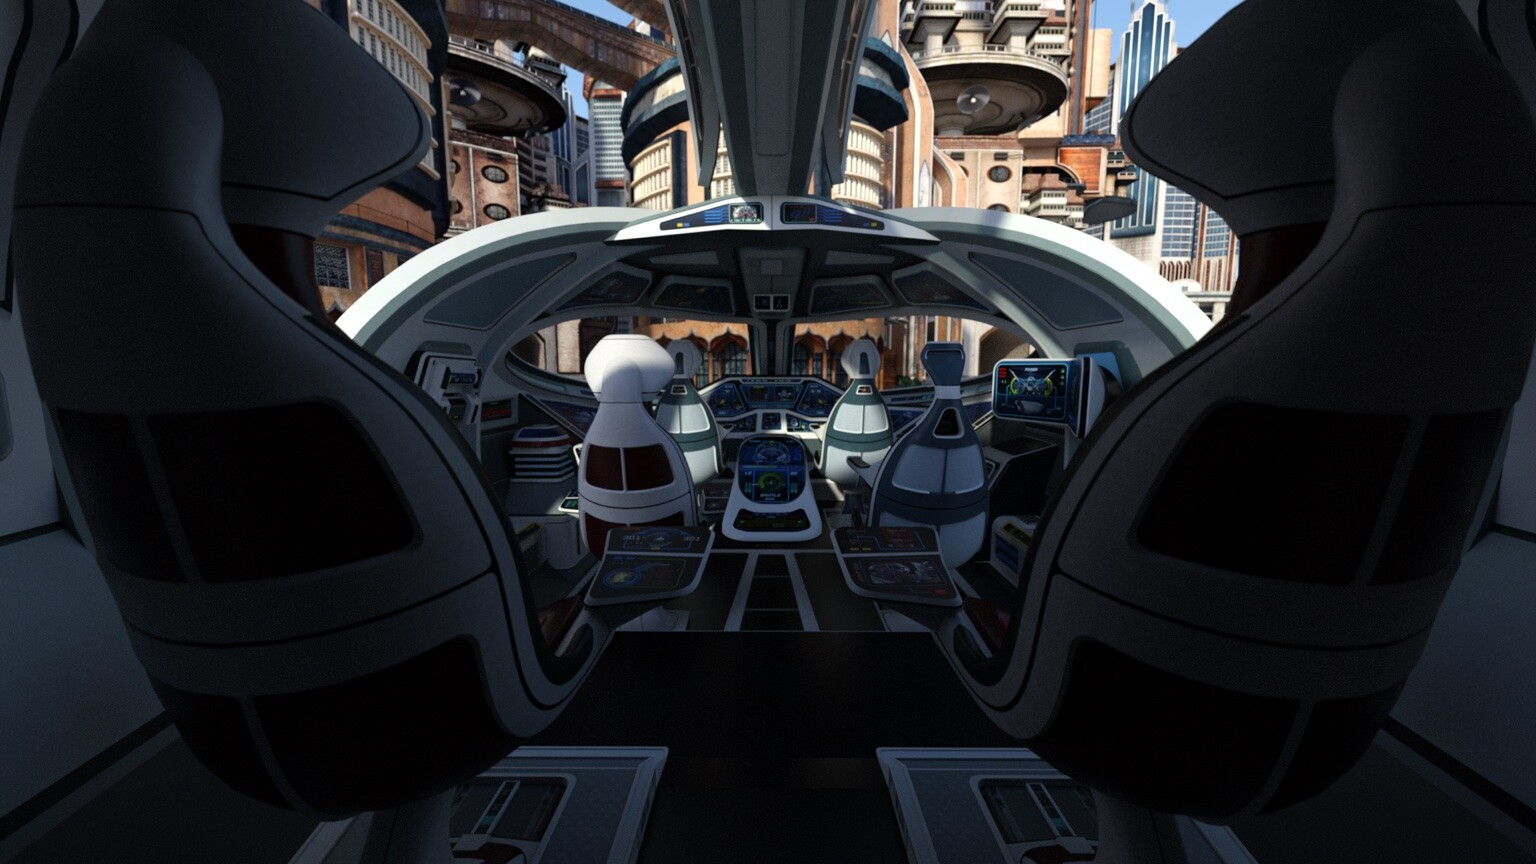 from the interior of the Shuttlestar looking out.